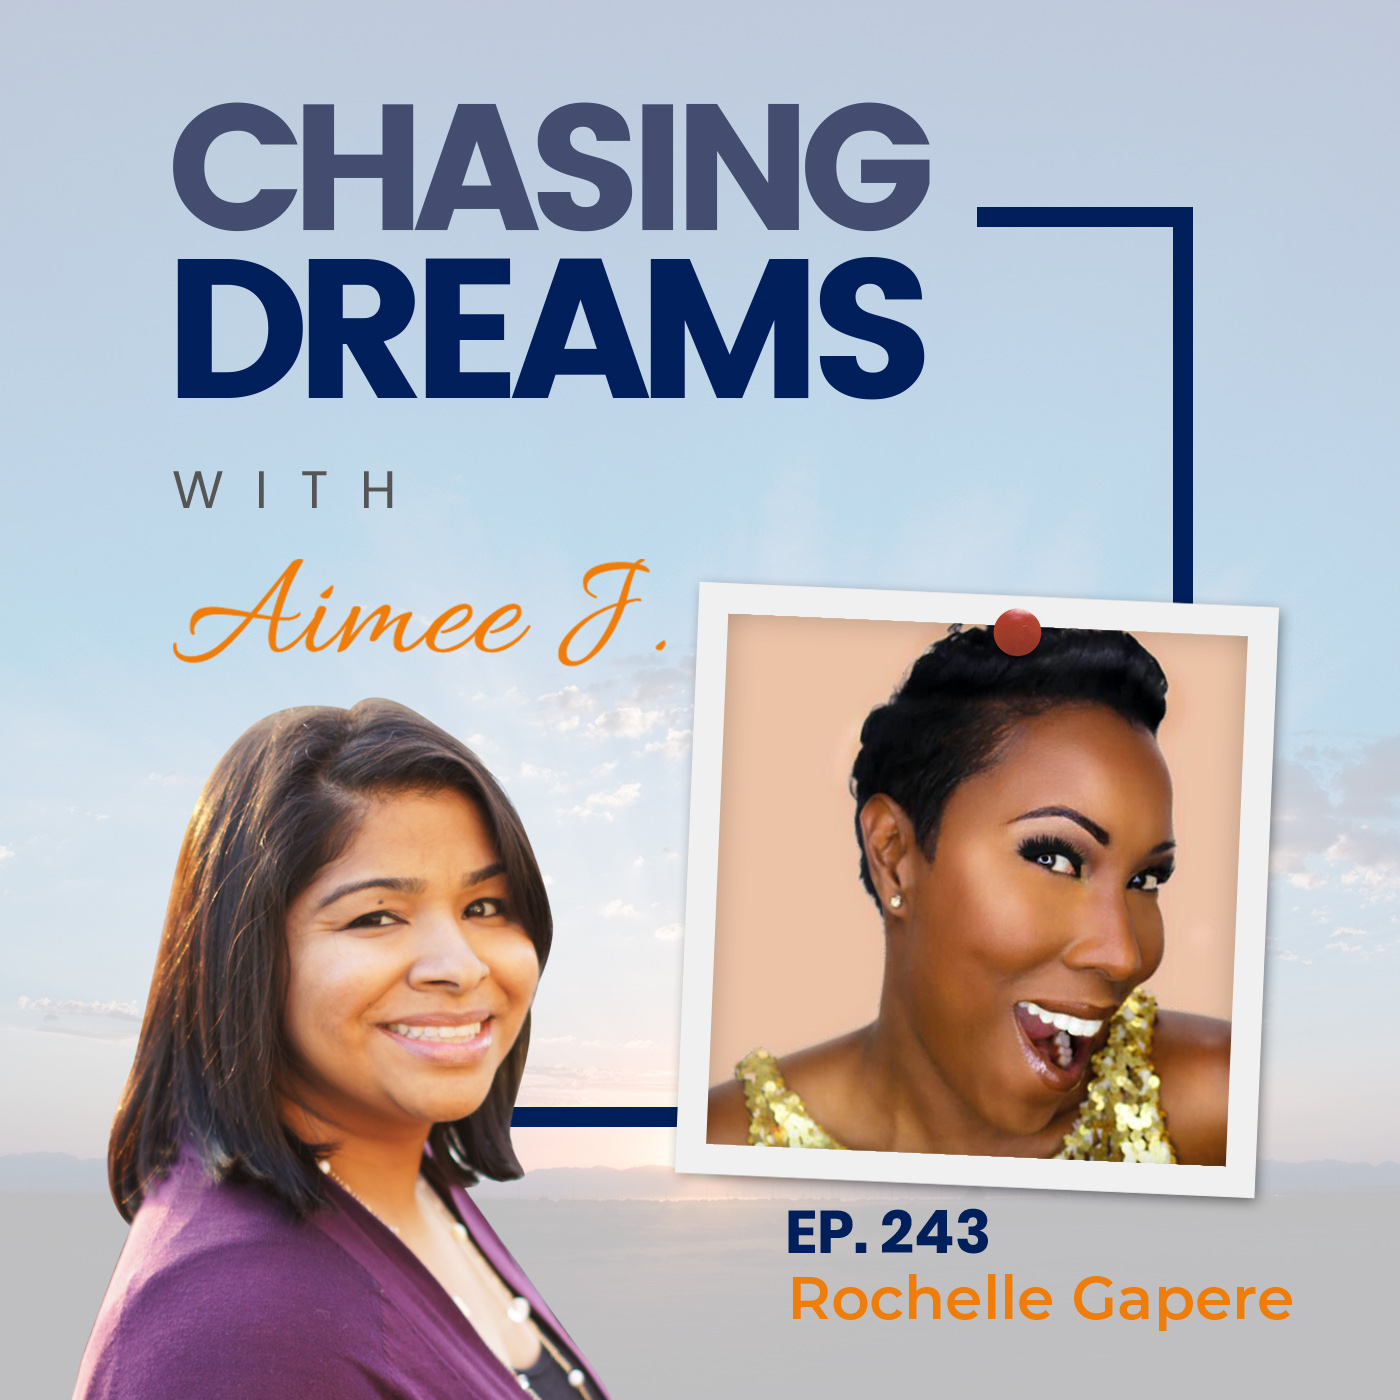 Ep 243: Rochelle Gapere – One Happy Day at a Time